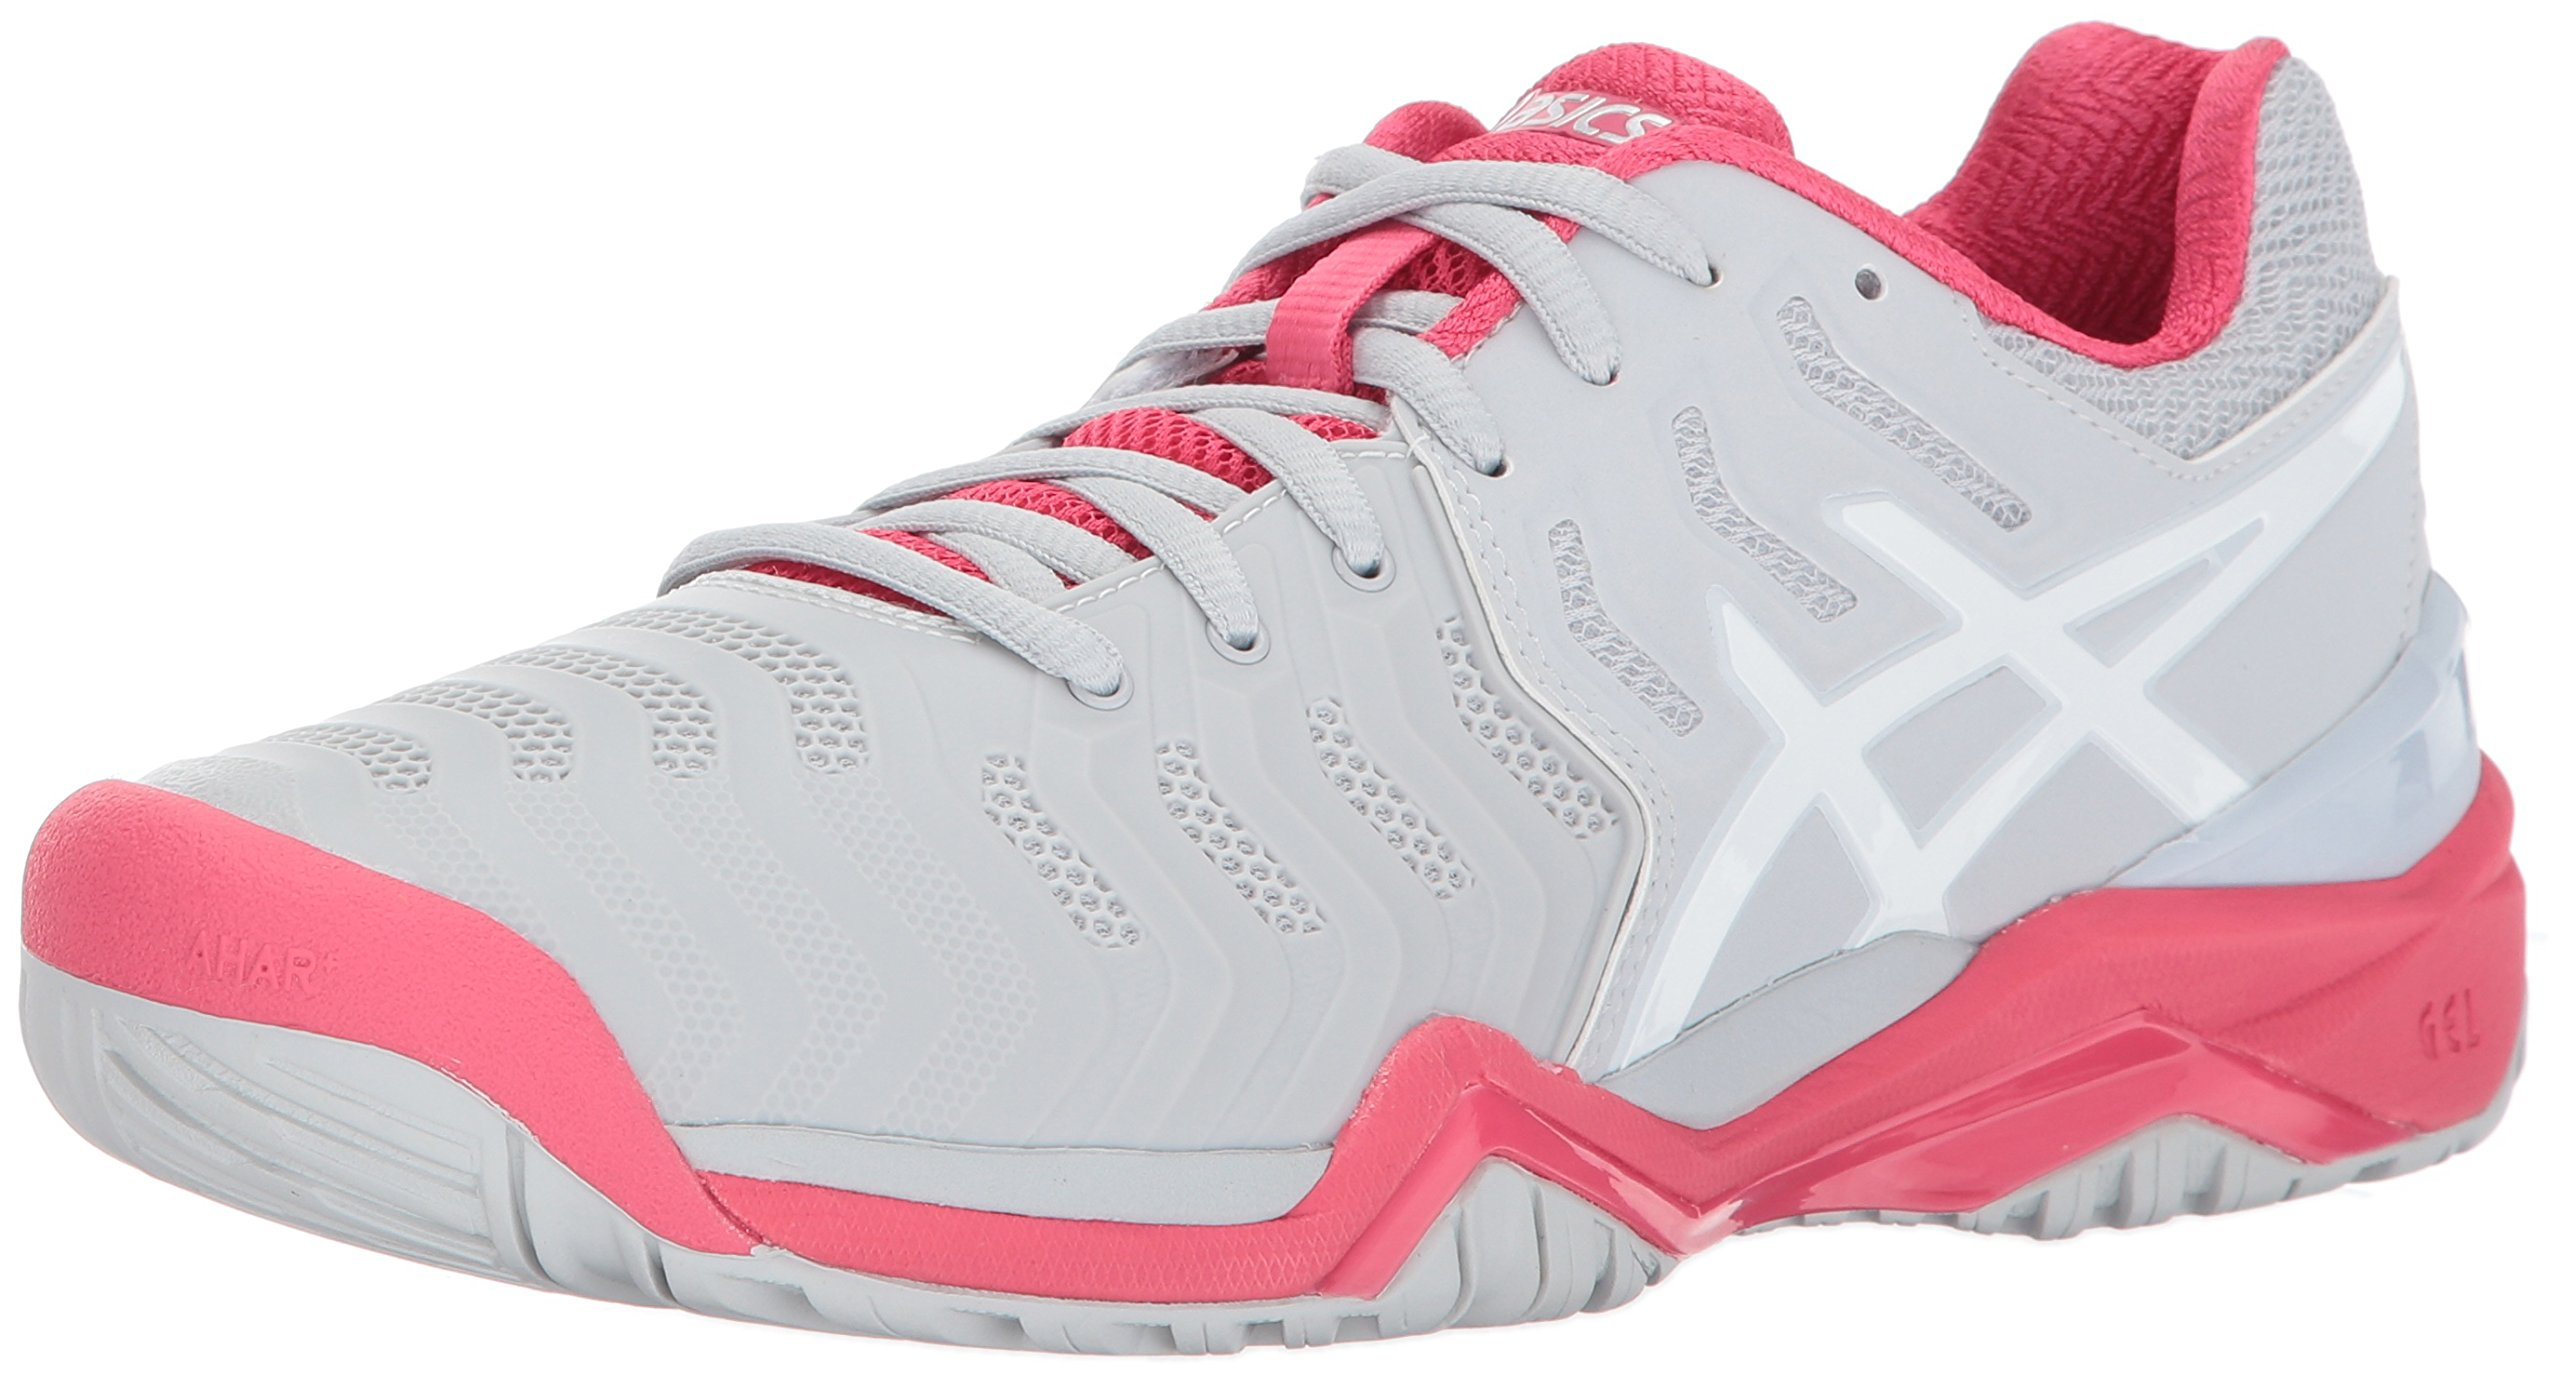 ASICS Women's Gel-Resolution 7 Tennis-Shoes, Glacier Grey/White/Rouge Red, 8.5 Medium US